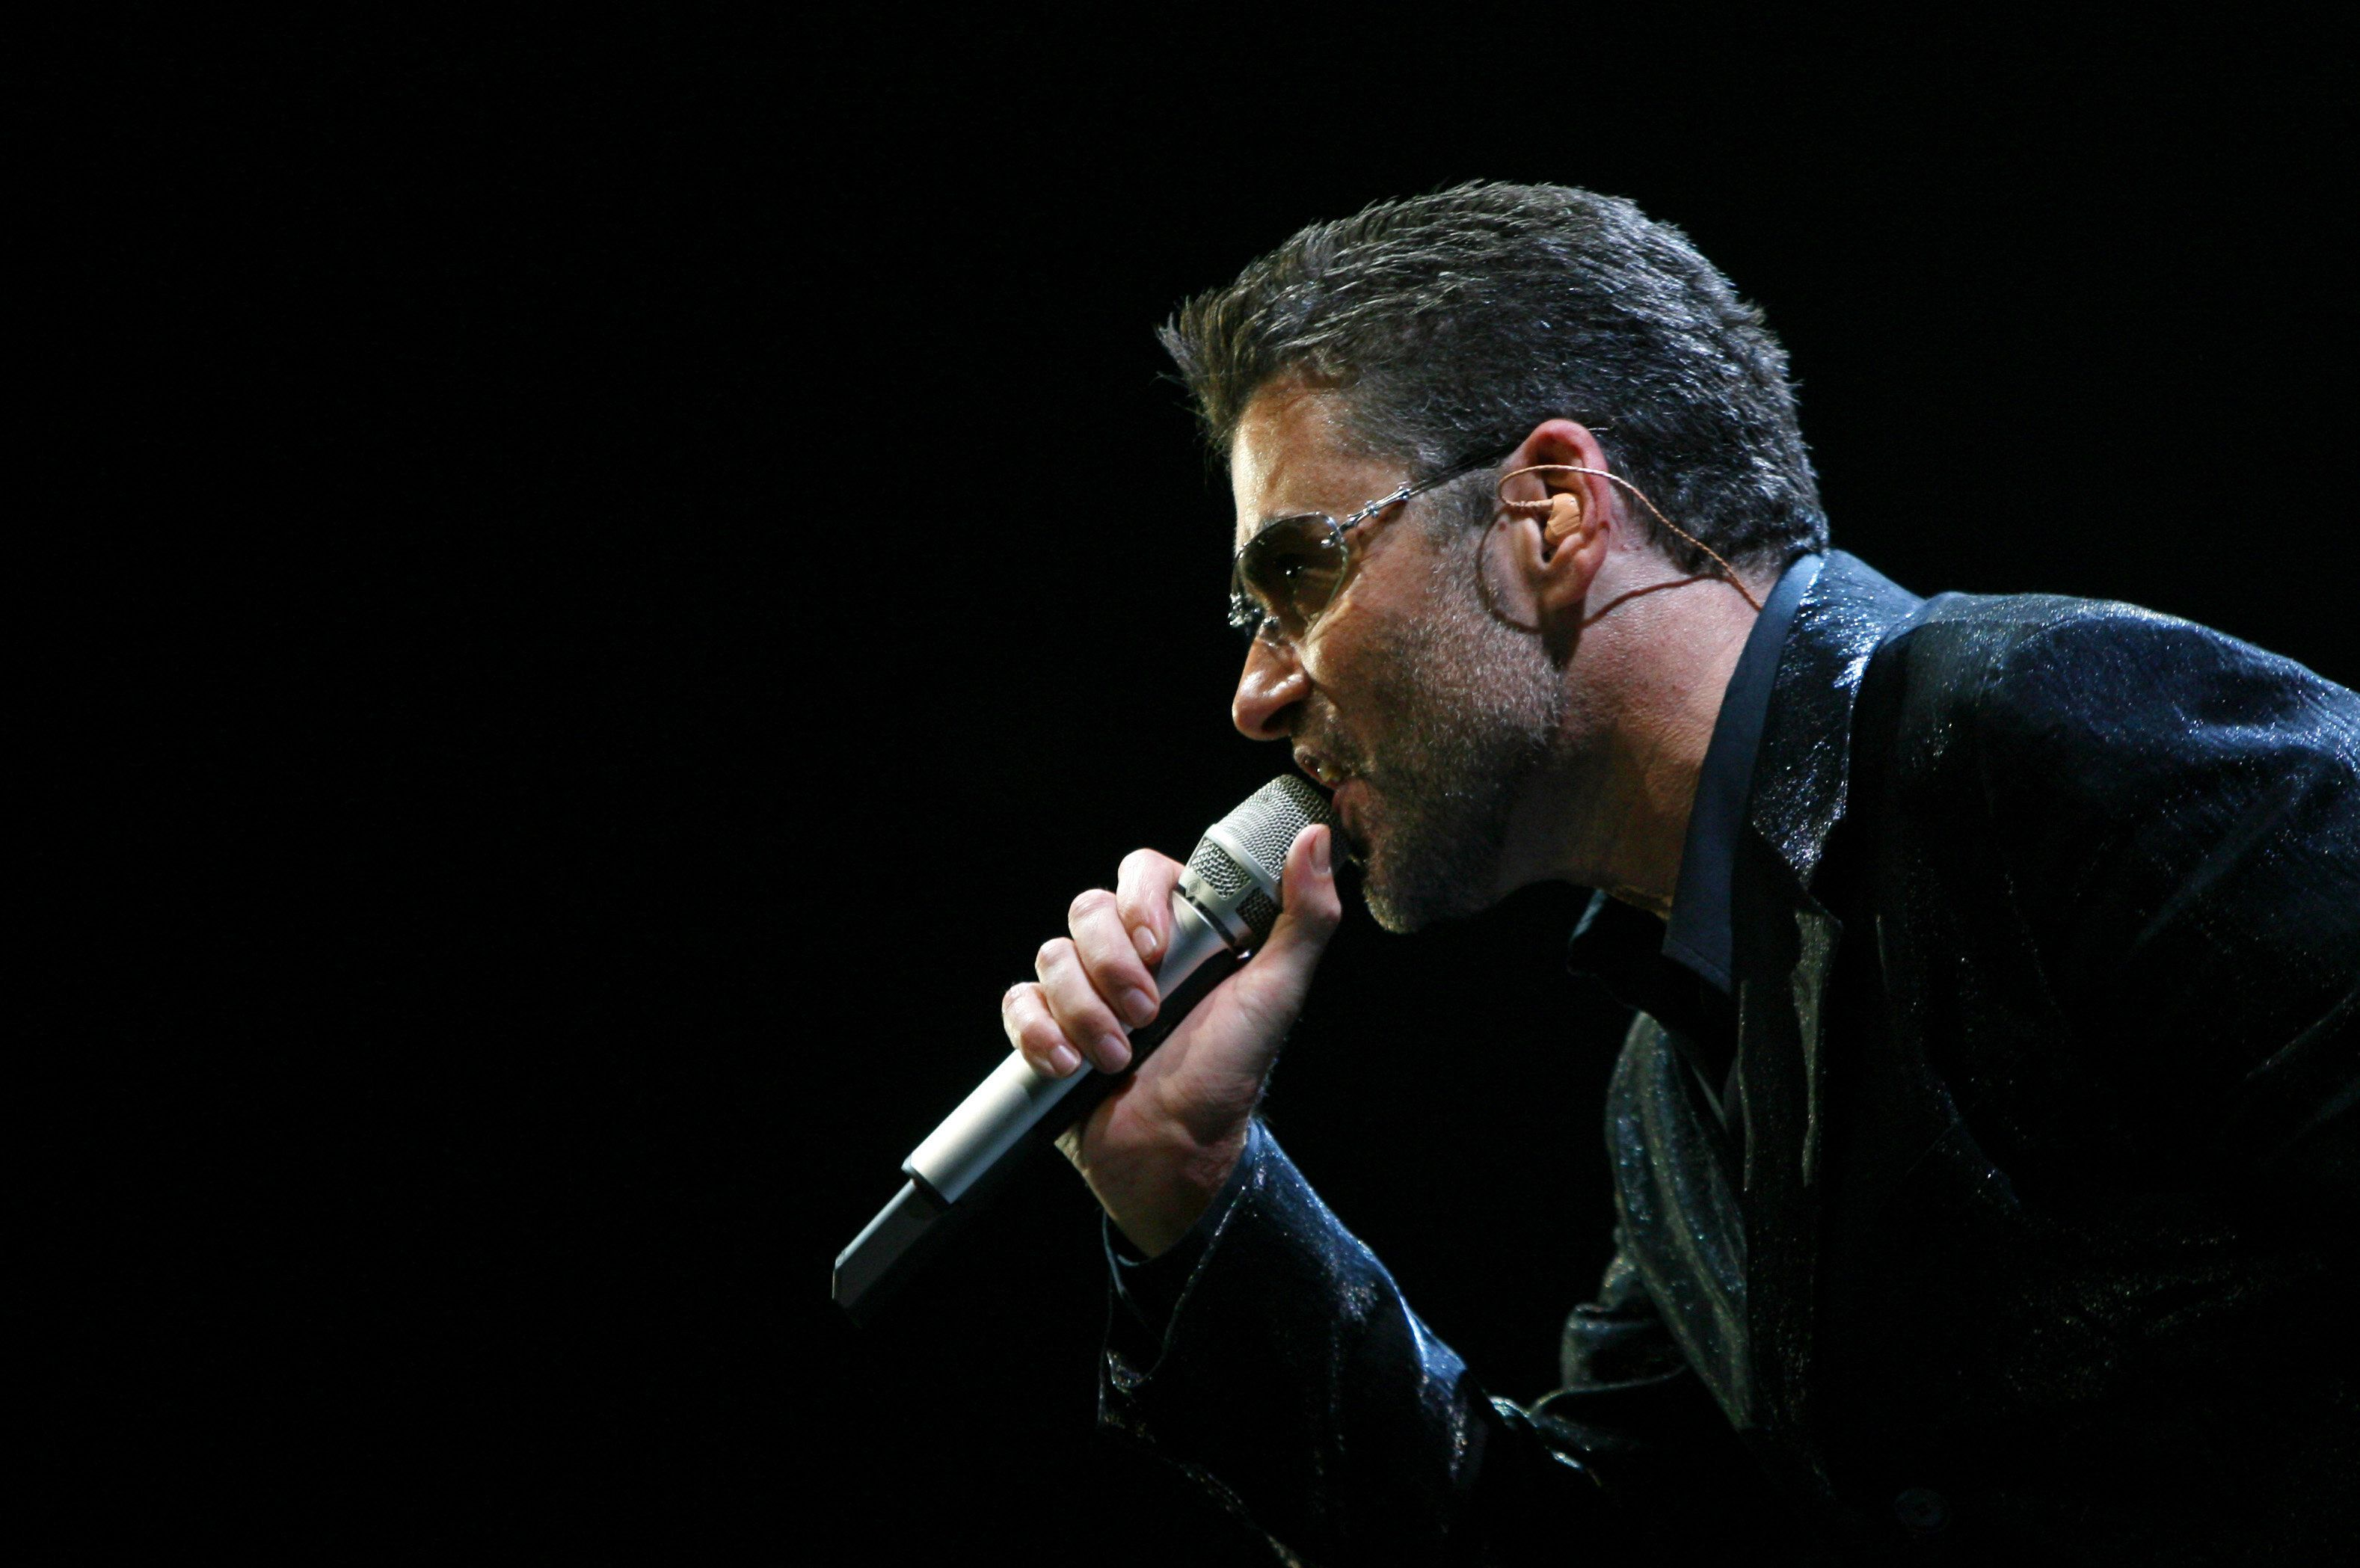 Interior designer Paris Kostopoulos and artist Tina Psoinos will pay tribute to George Michael in New York next month with a